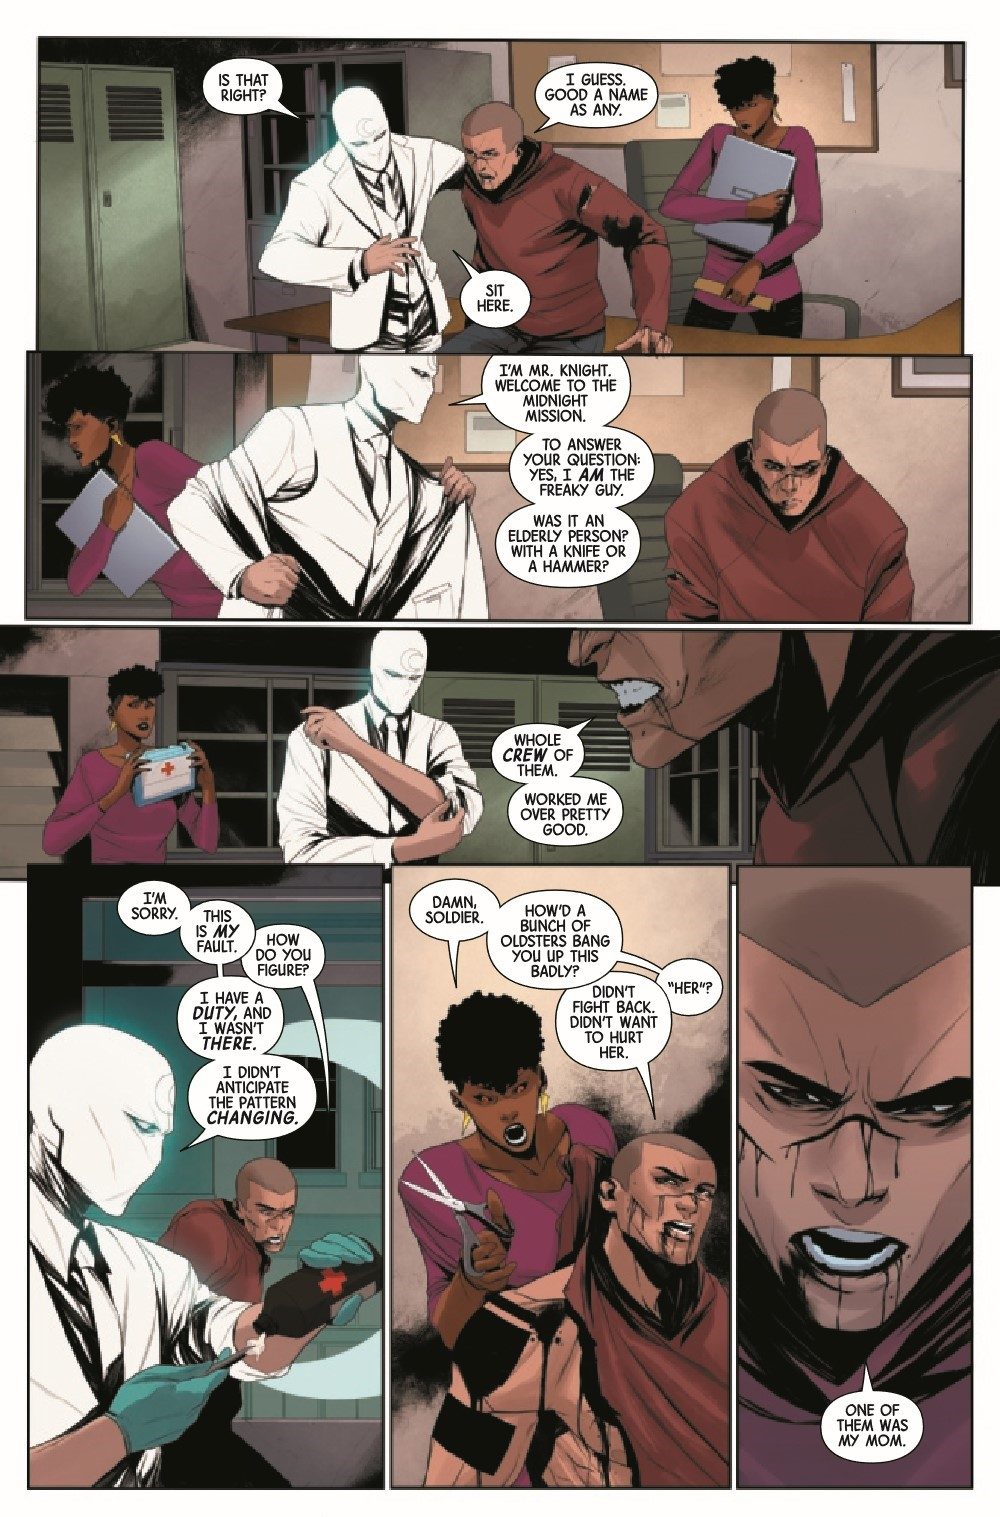 MOONKN2021002_Preview-6 ComicList Previews: MOON KNIGHT #2